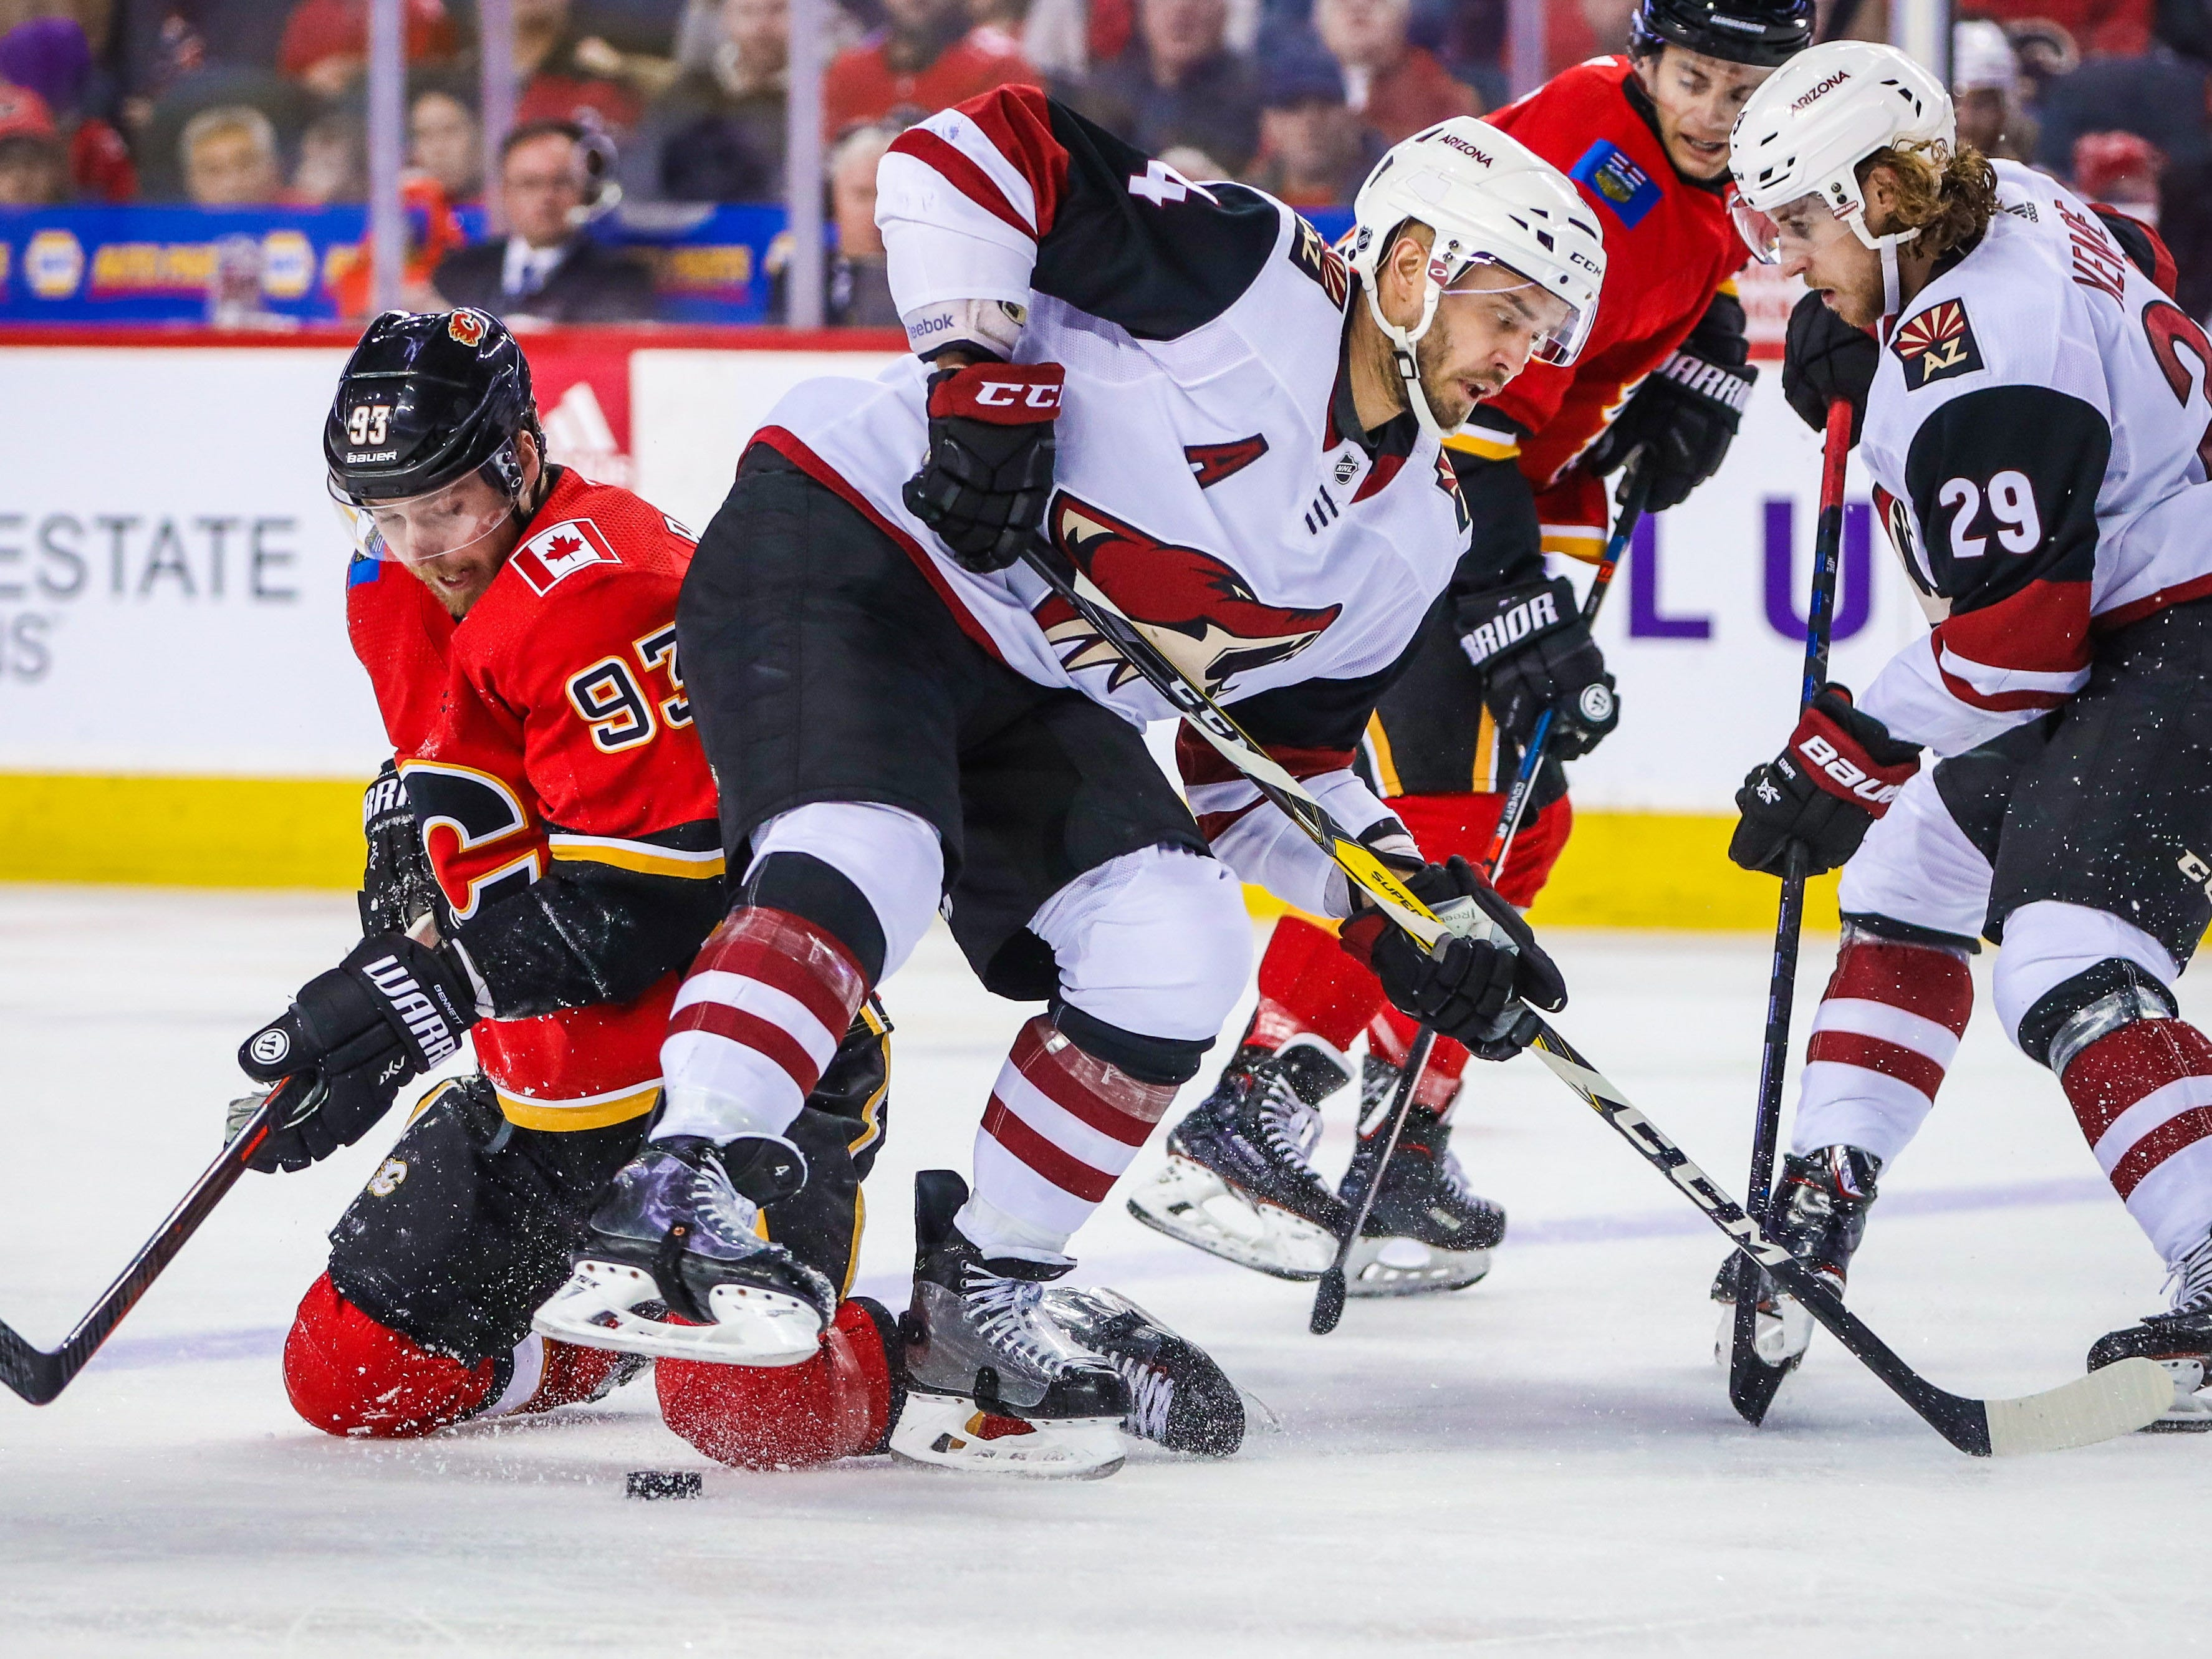 Feb 18, 2019; Calgary, Alberta, CAN; Calgary Flames center Sam Bennett (93) and Arizona Coyotes defenseman Niklas Hjalmarsson (4) battle for the puck during the third period at Scotiabank Saddledome. Calgary Flames won 5-2. Mandatory Credit: Sergei Belski-USA TODAY Sports